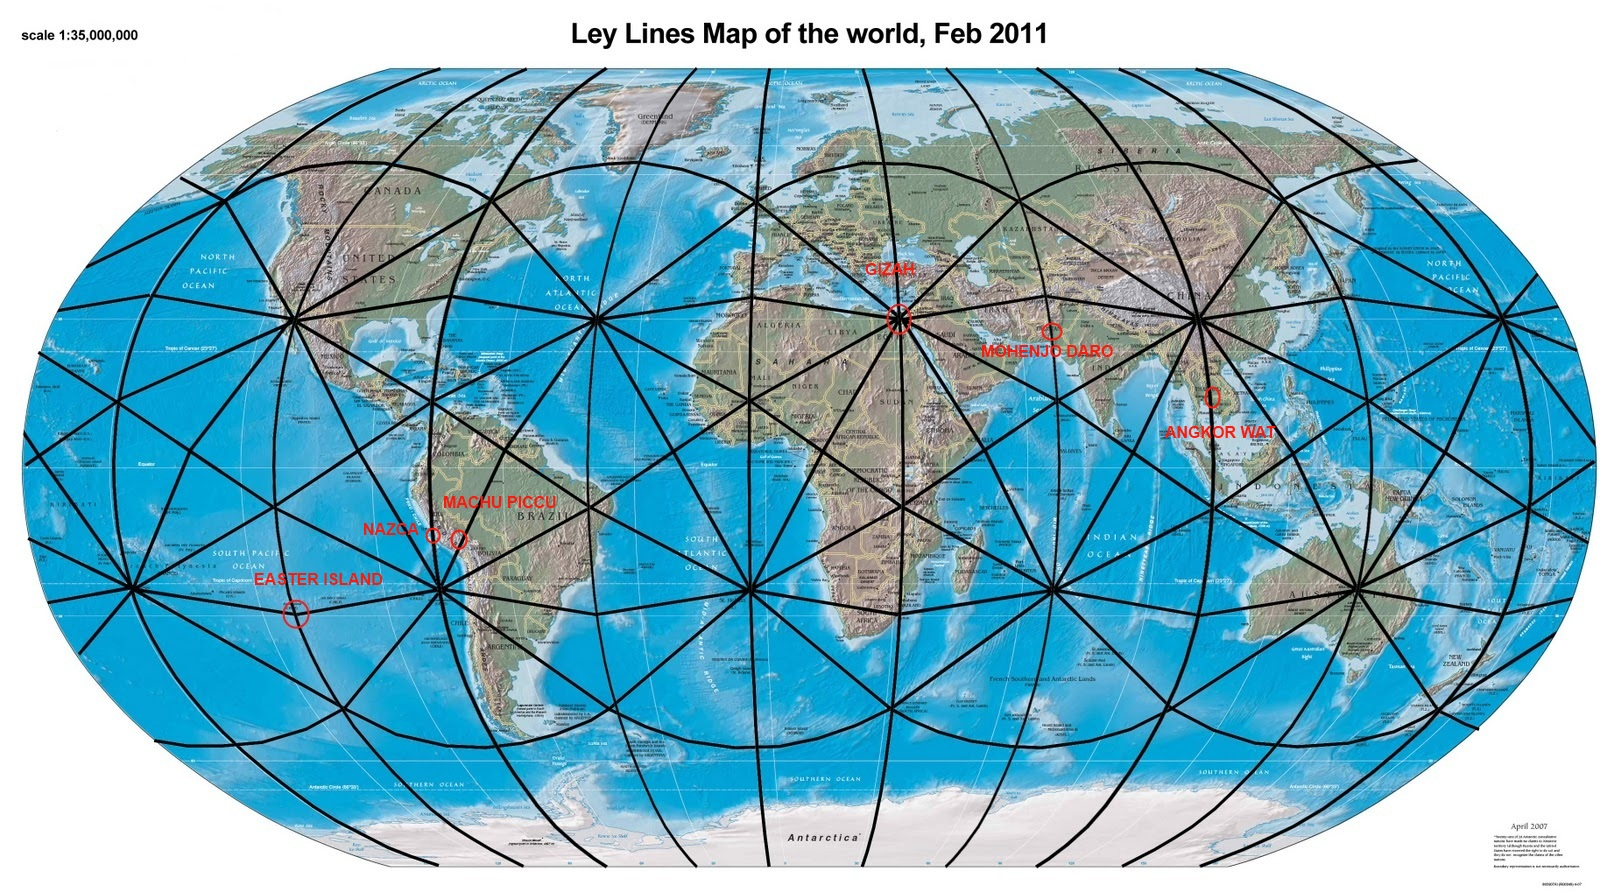 Ley Lines The Future Mapping Company